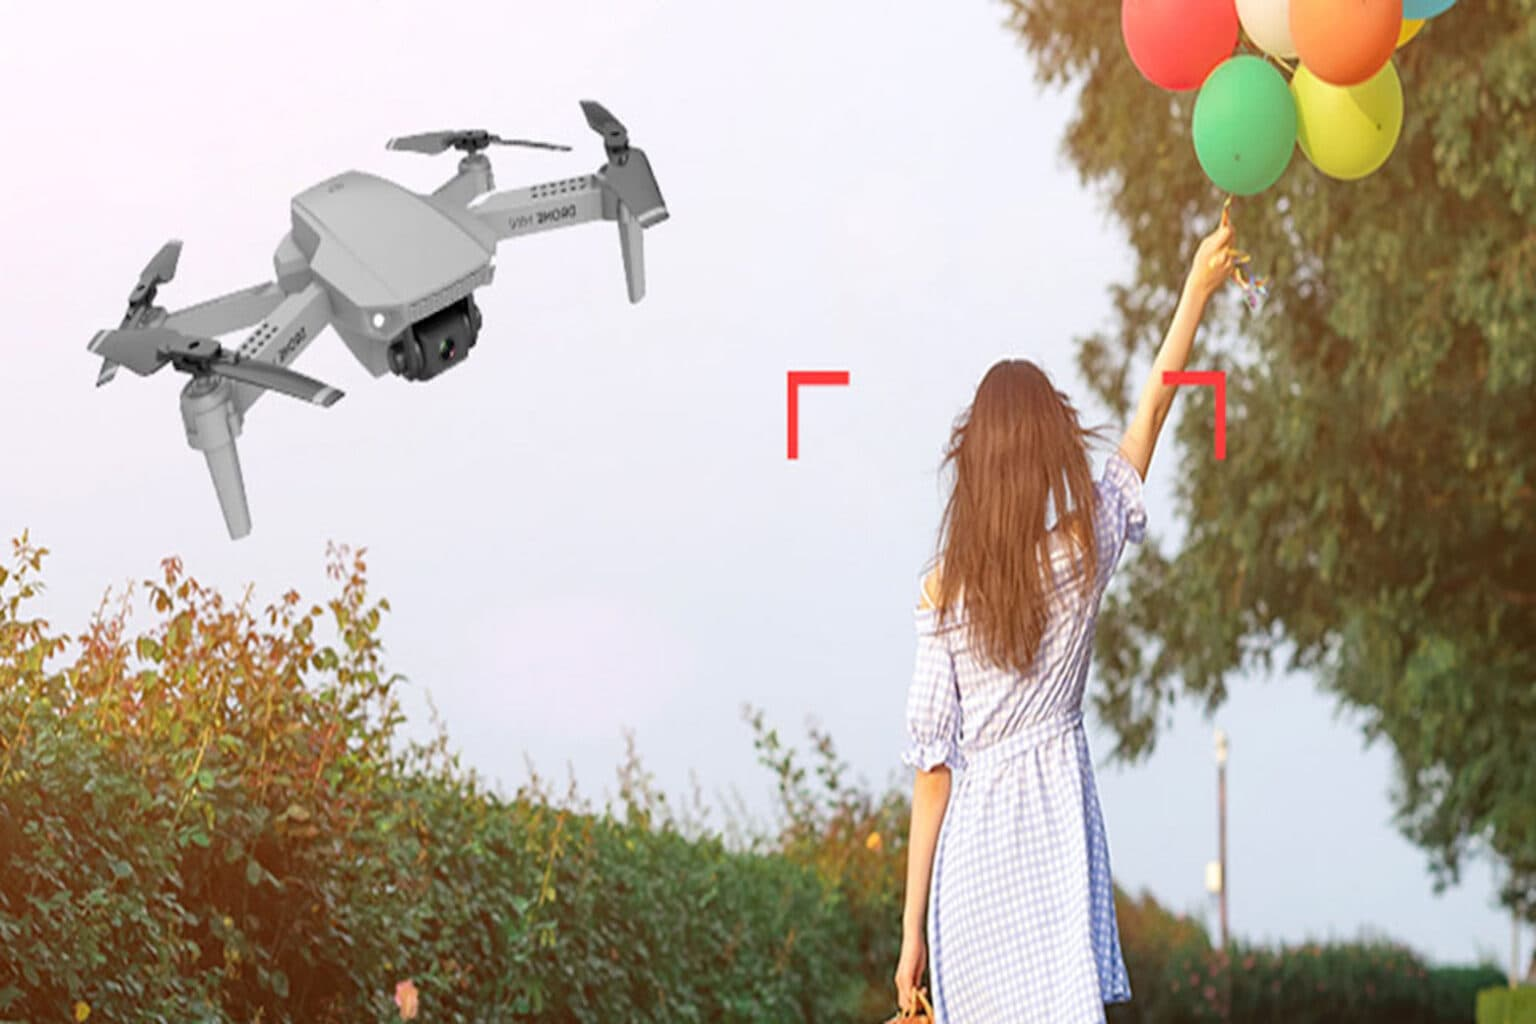 Capture incredible videos with these high-quality drones